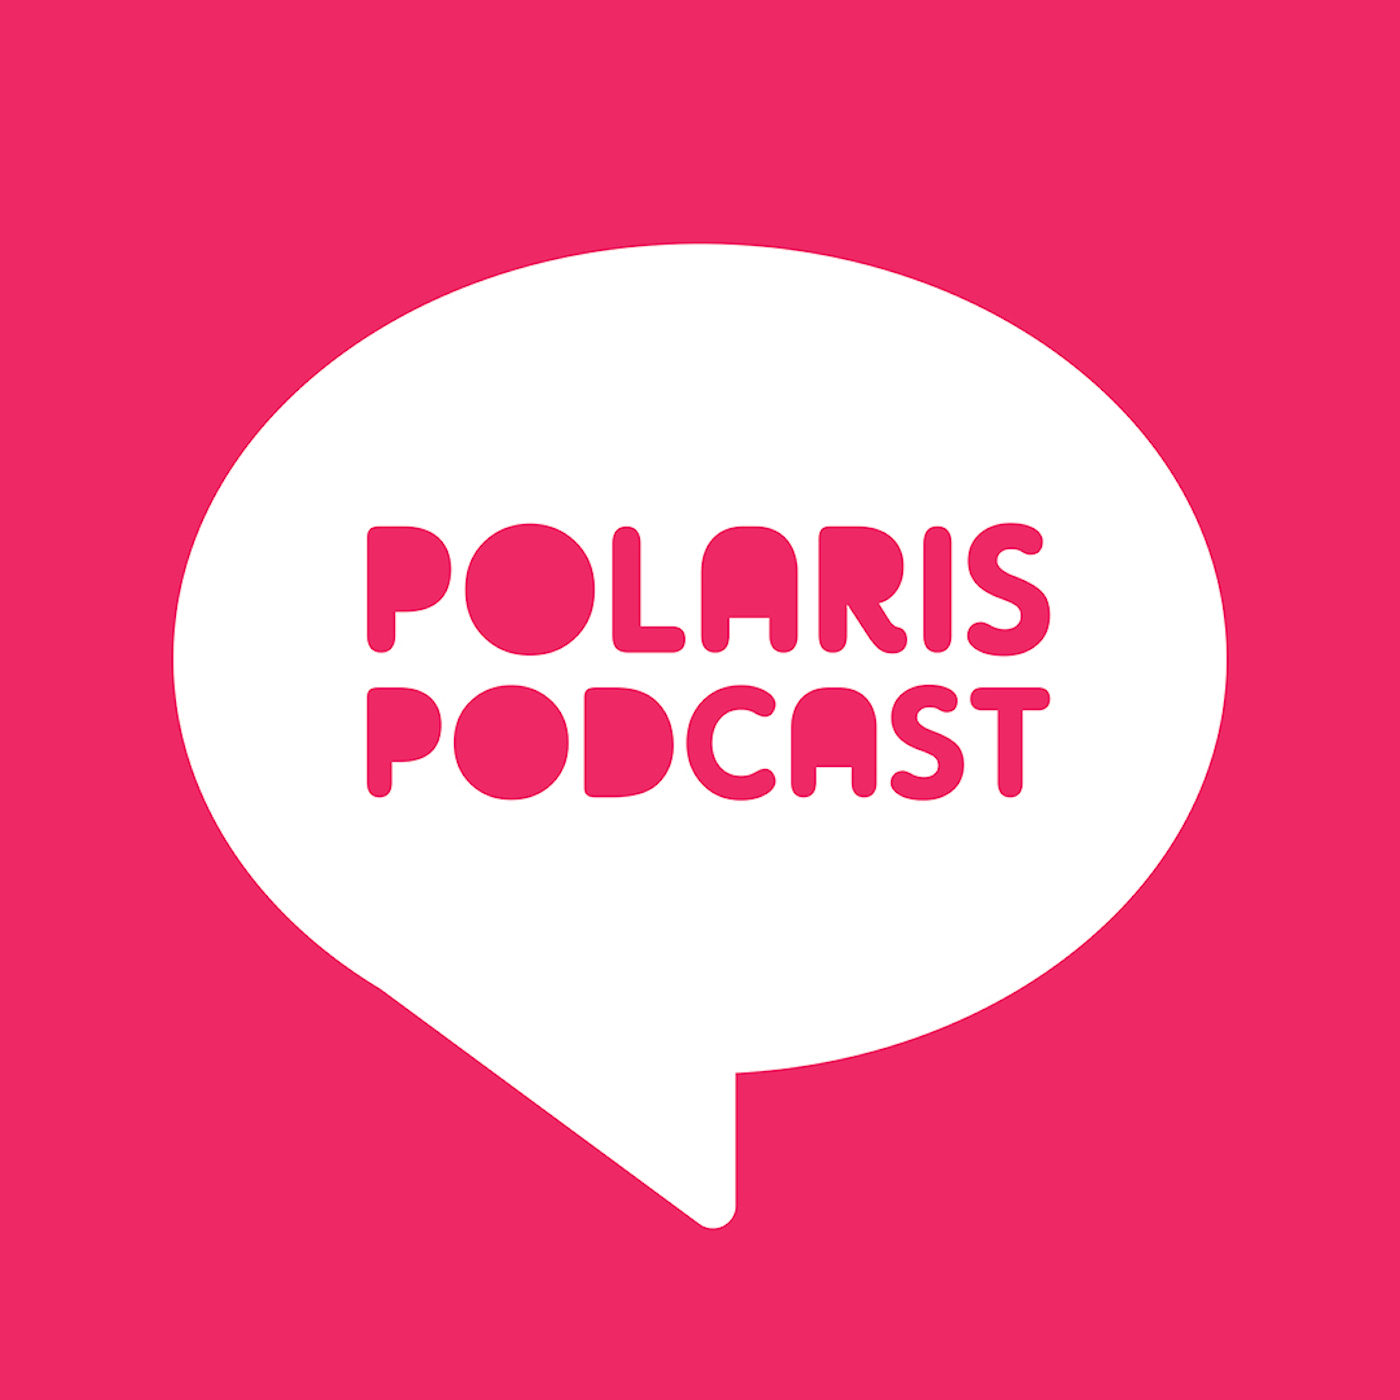 Polaris Podcast show art